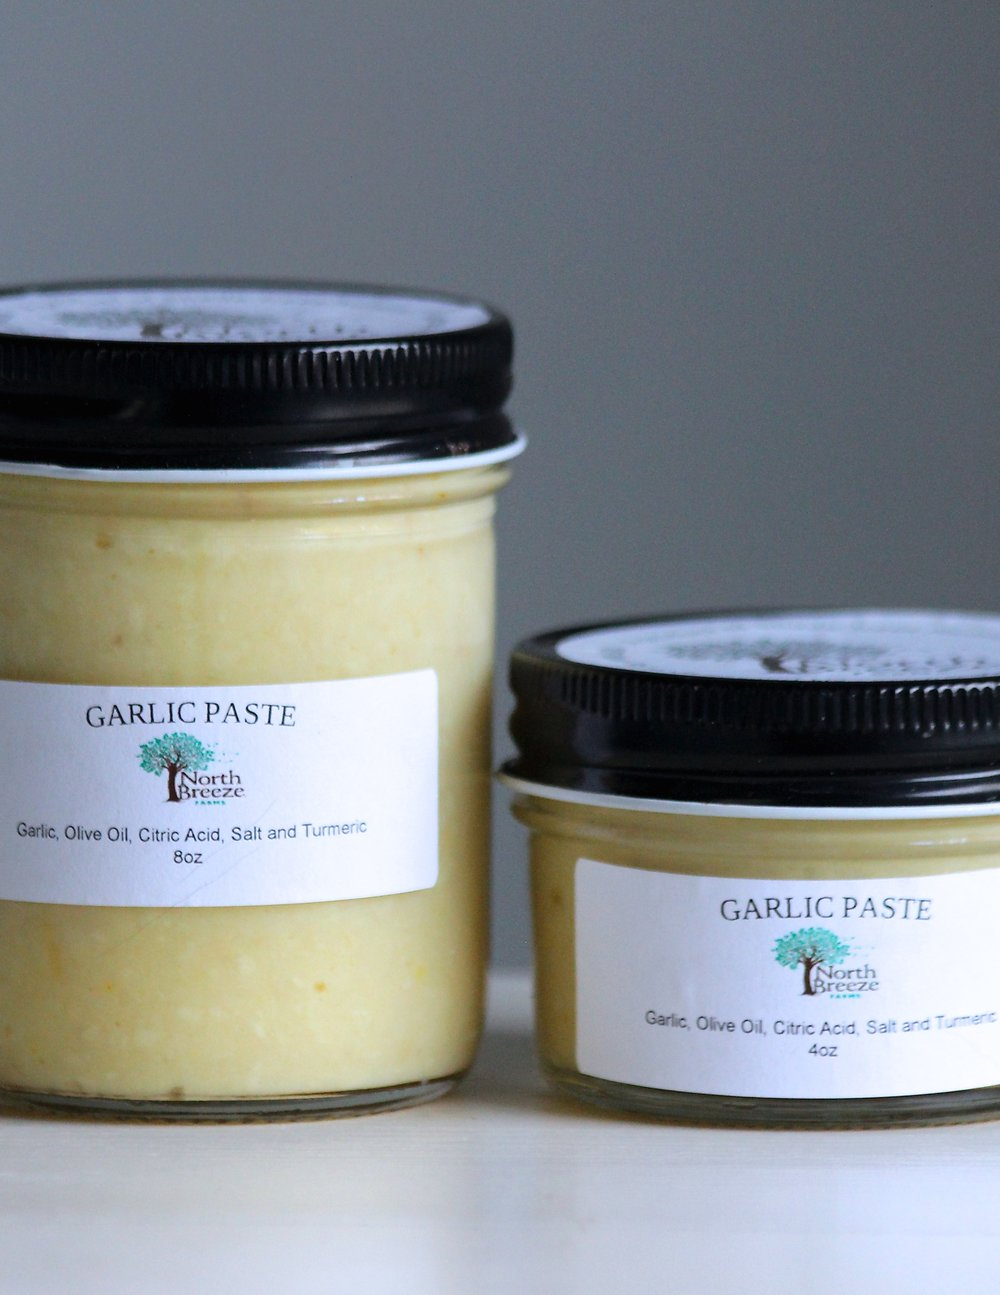 Garlic Paste 4oz $6.50, 8oz $12.50